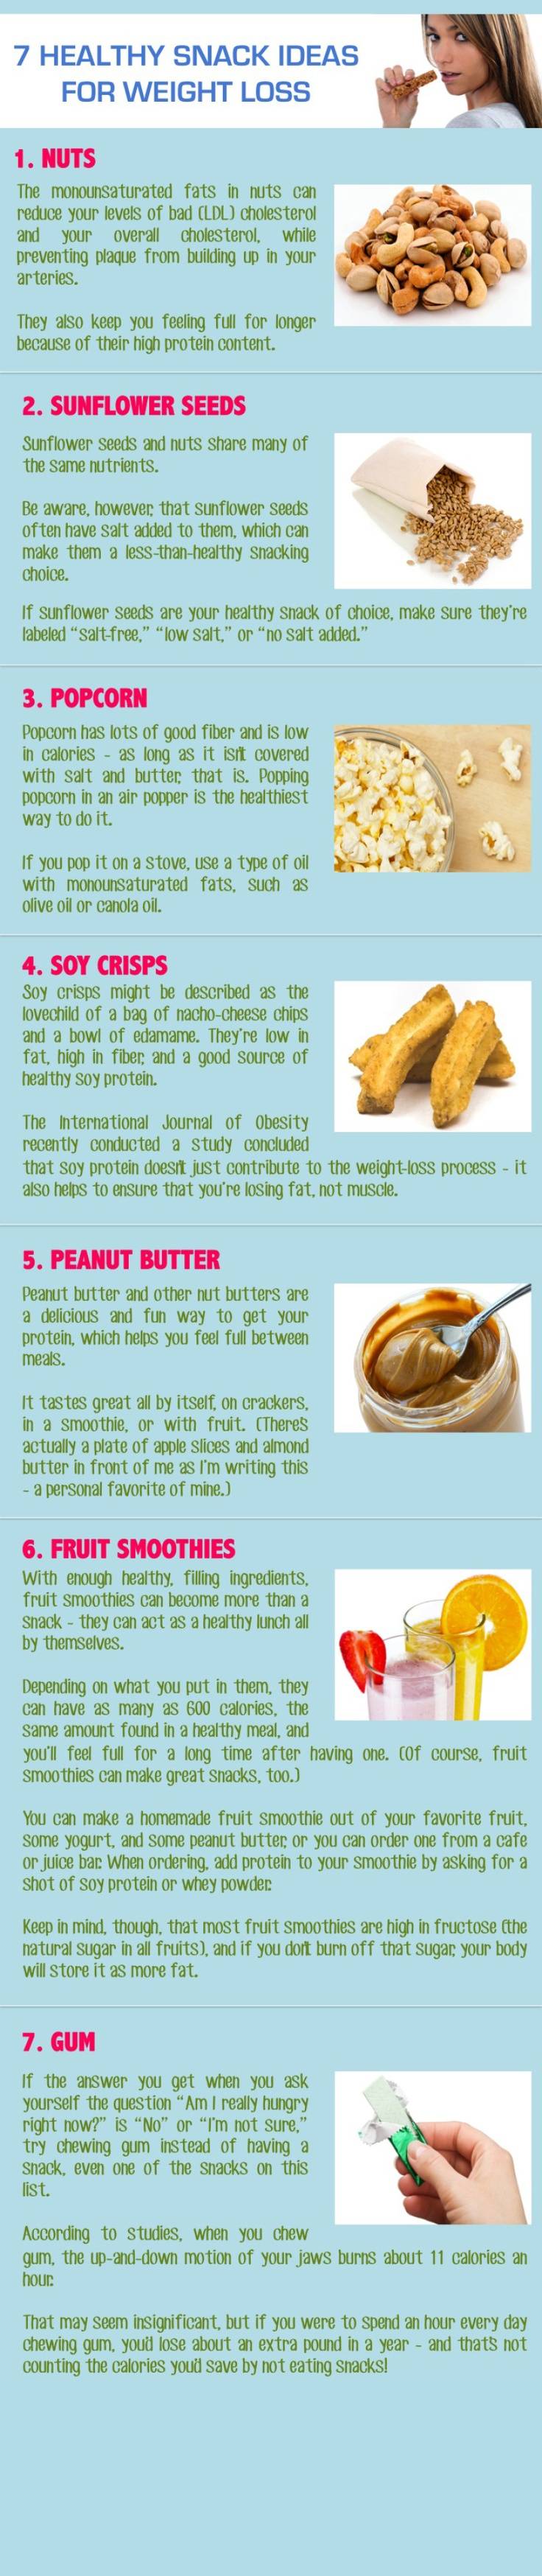 7 healthy snack ideas for weightloss infographic fitness